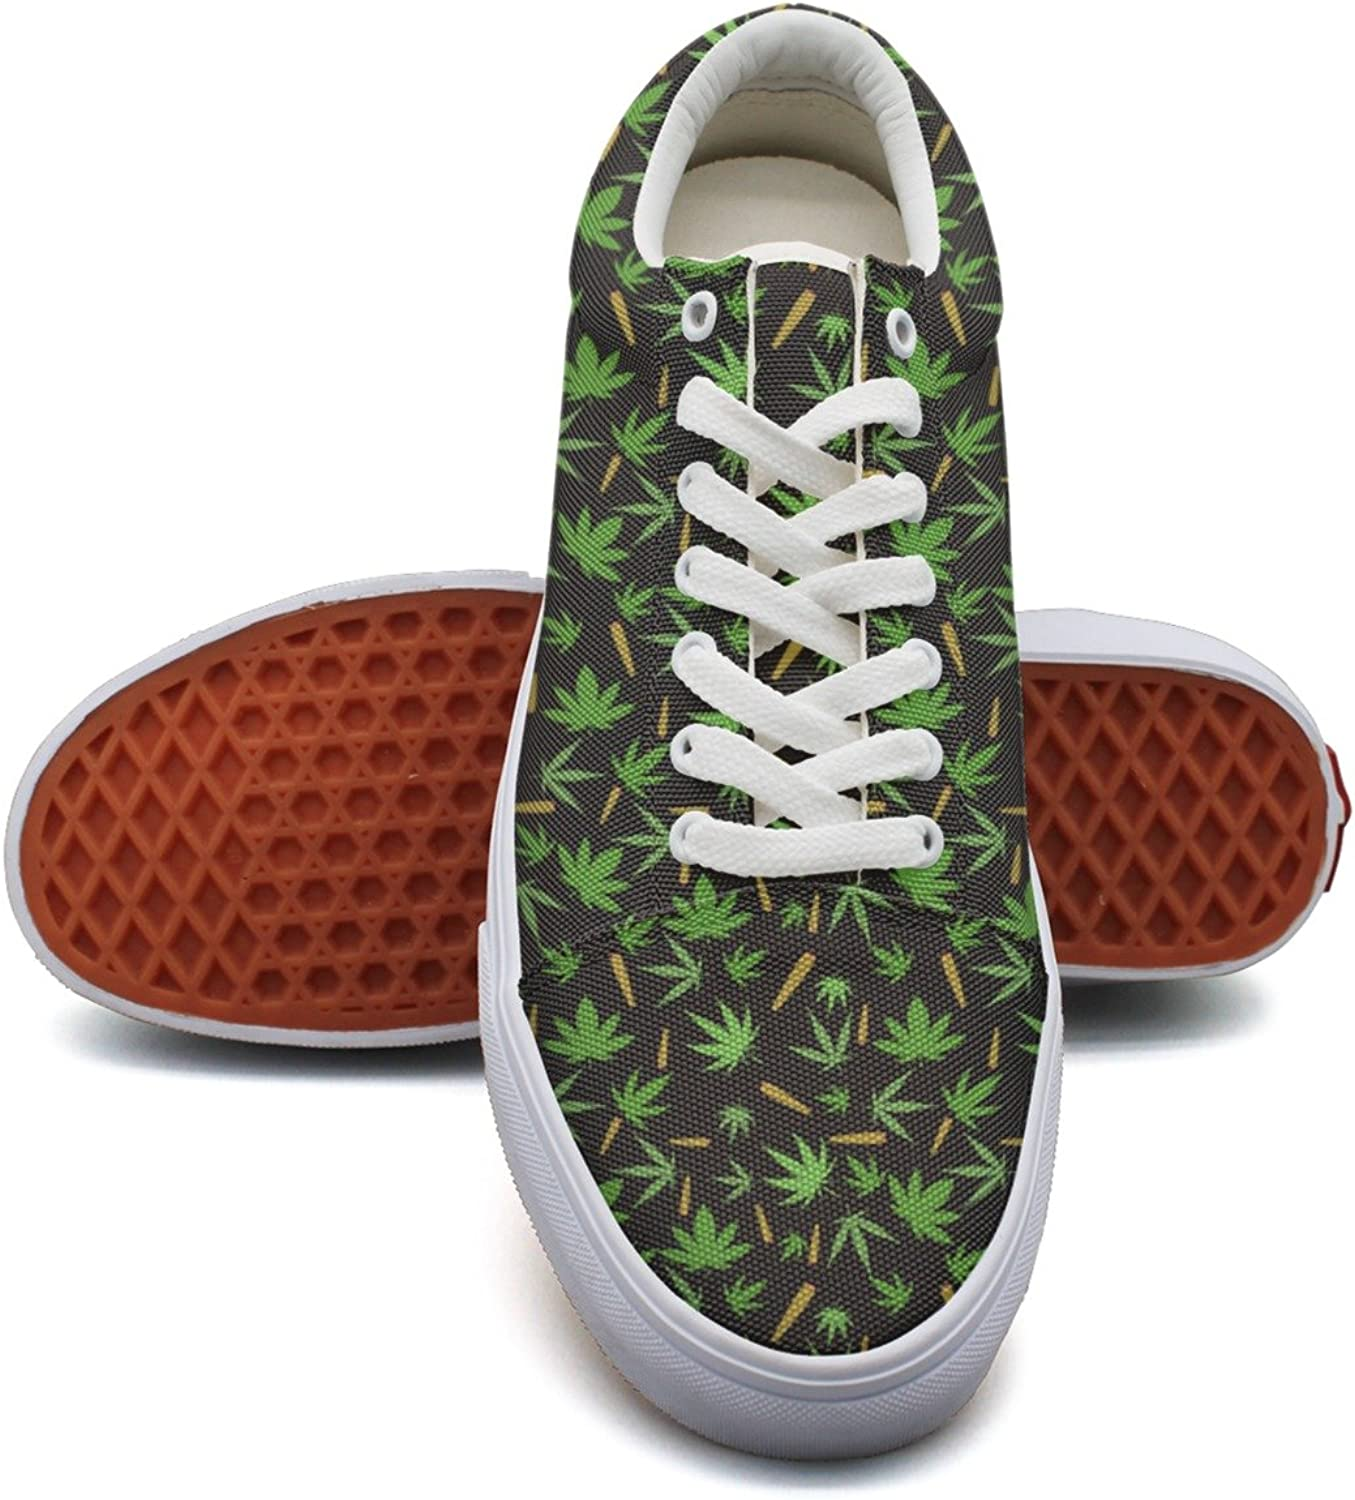 Milr Gile Pot Leaves and Cigar Print Sneaker Flat Canvas shoes for Womens Stylish